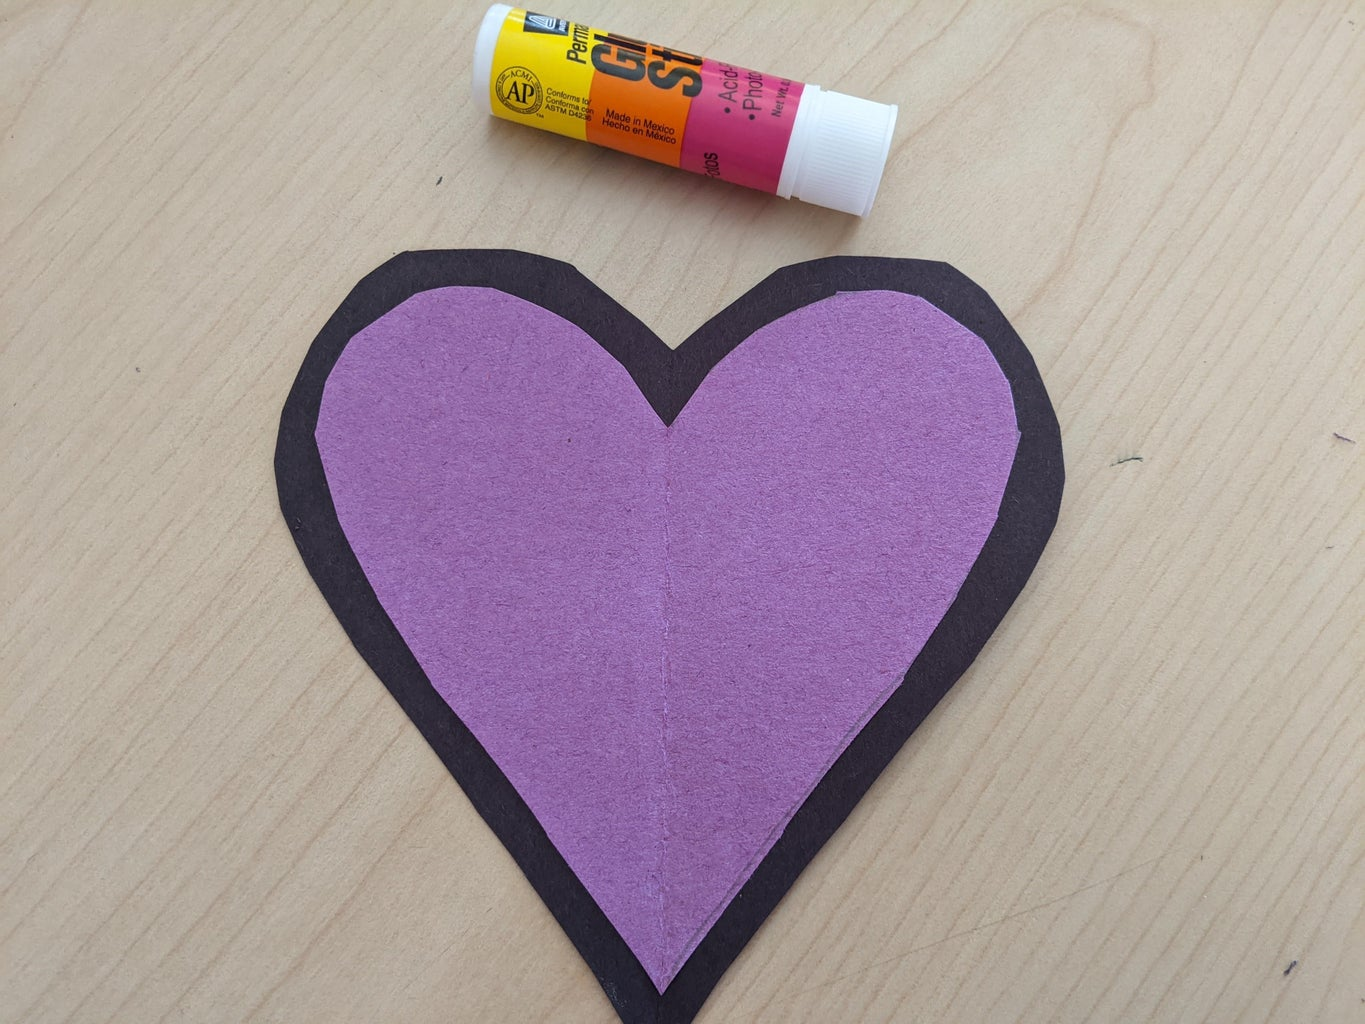 Glue the Hearts Together.